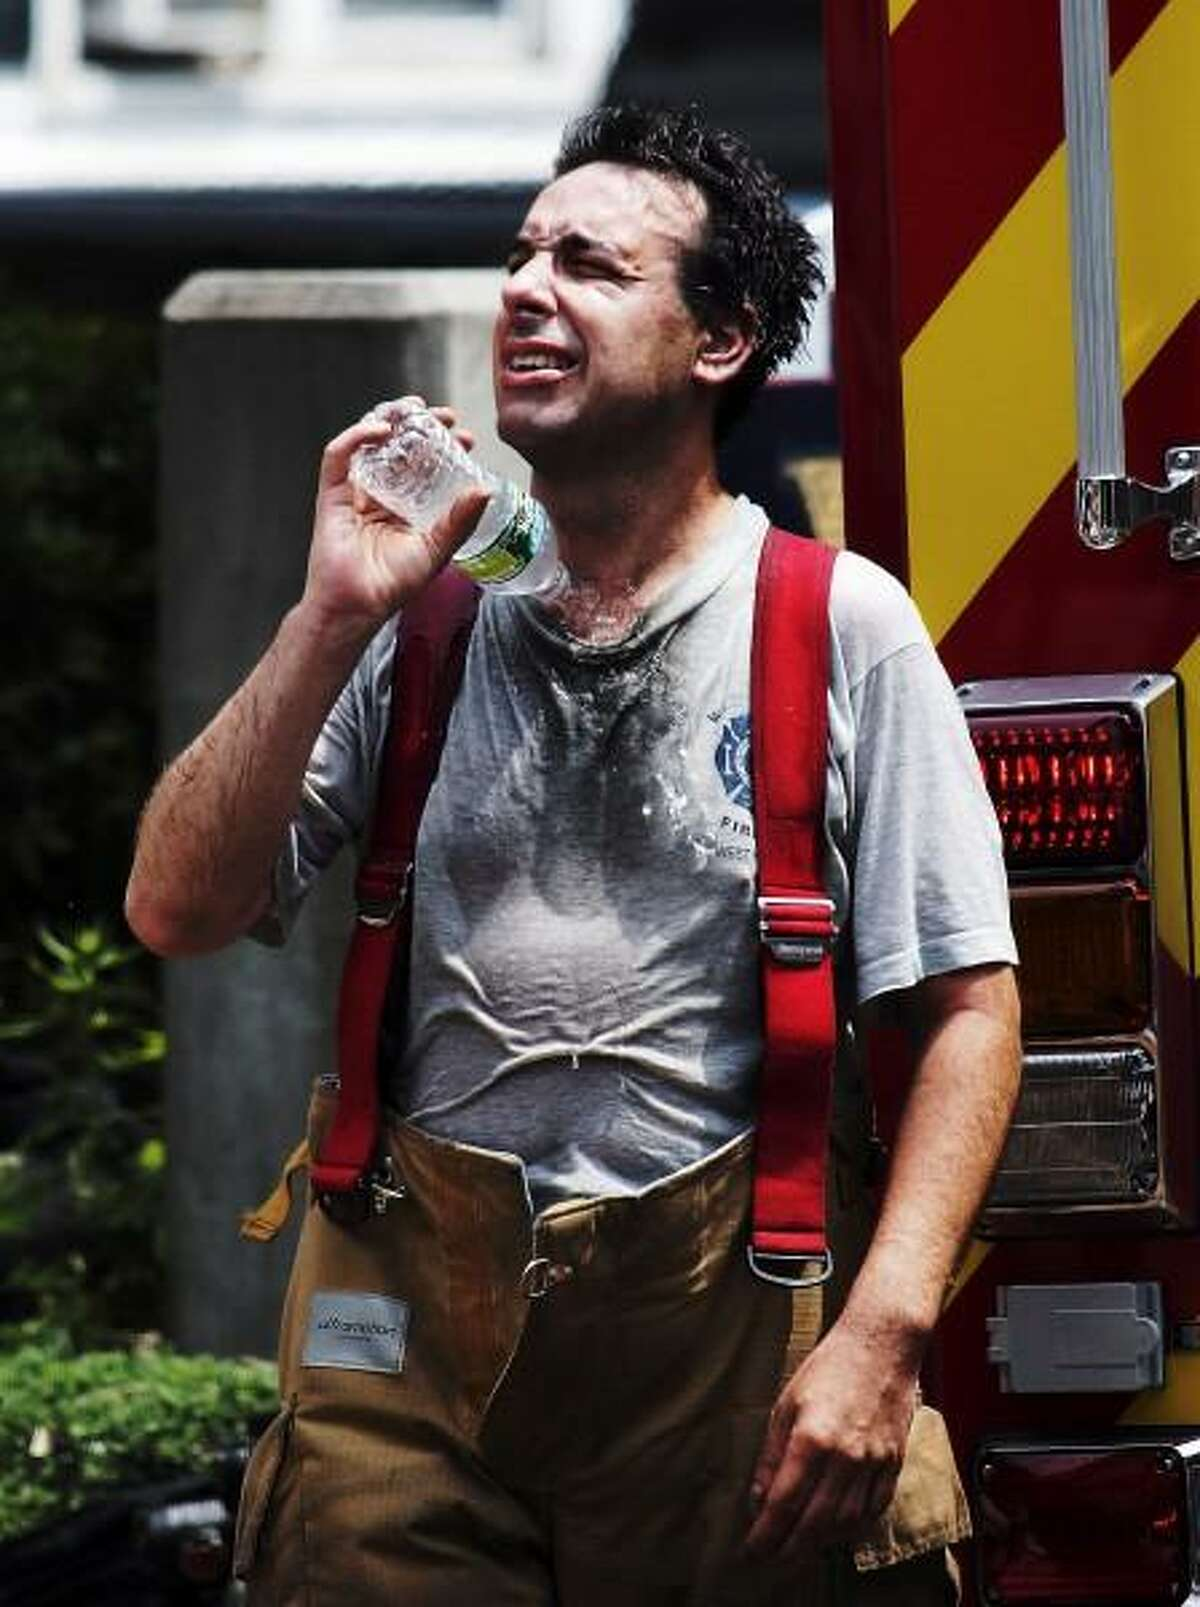 Peter Casolino/New Haven Register West Haven Firefighter Lt. Russell Lariviere cools off as Firefighters from several districts in West Haven battled a blaze at 817 Campbell Ave in the early afternoon on Tuesday. pcasolino@newhavenregister.com